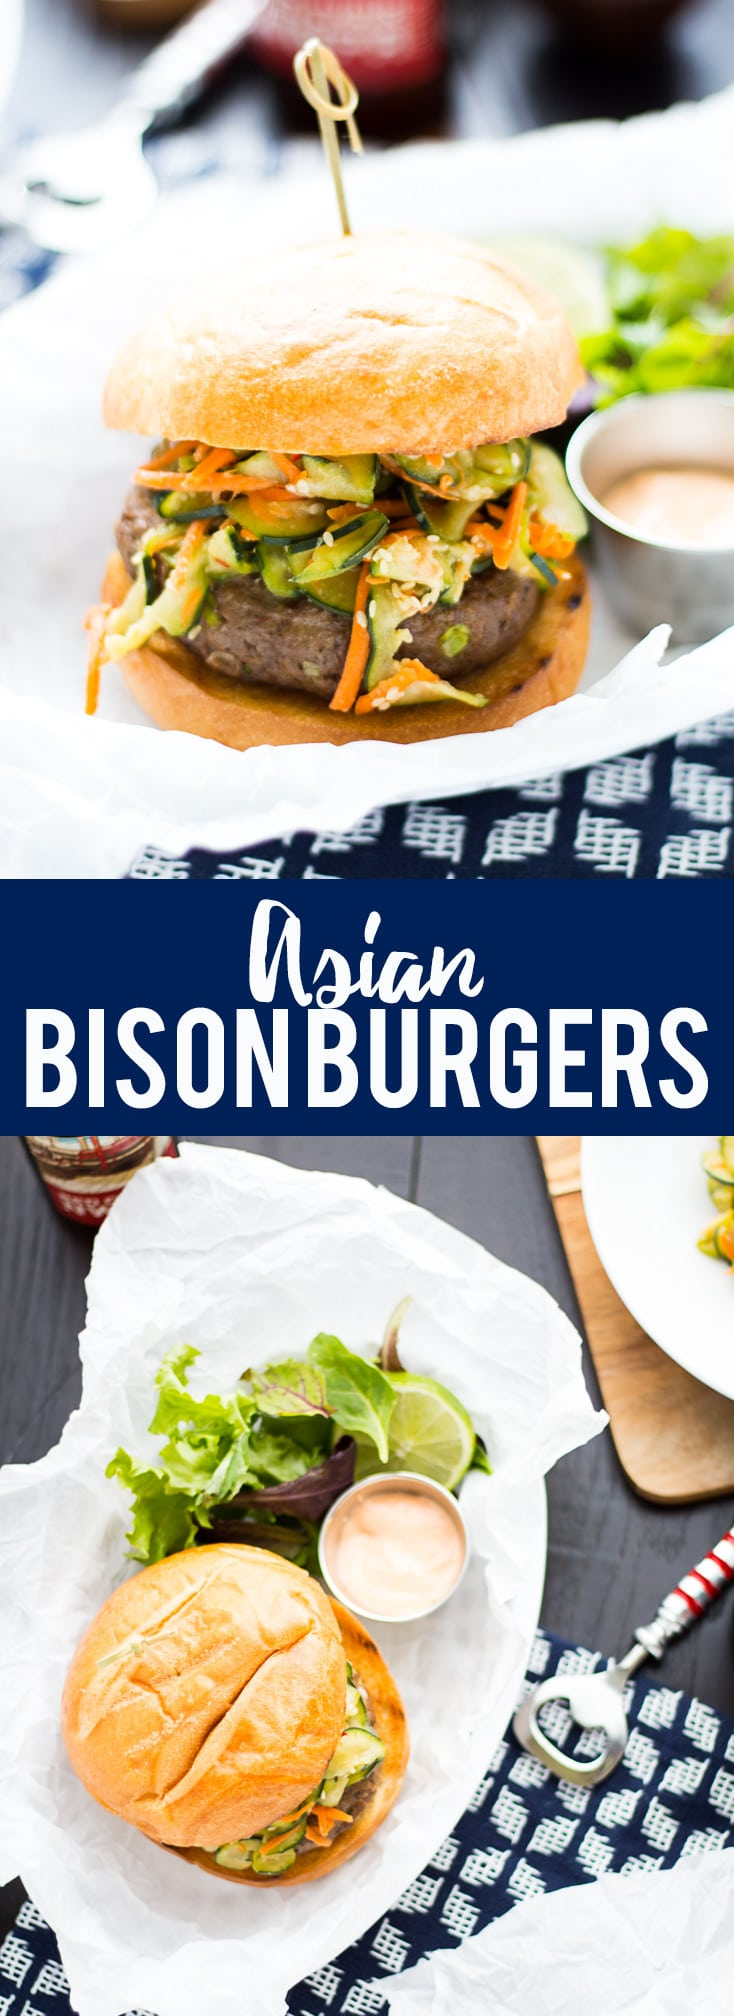 These Asian Bison Burgers are just the thing to change up your grilling routine! Lean ground bison burgers full of asian flavors and topped with a sriracha aioli!